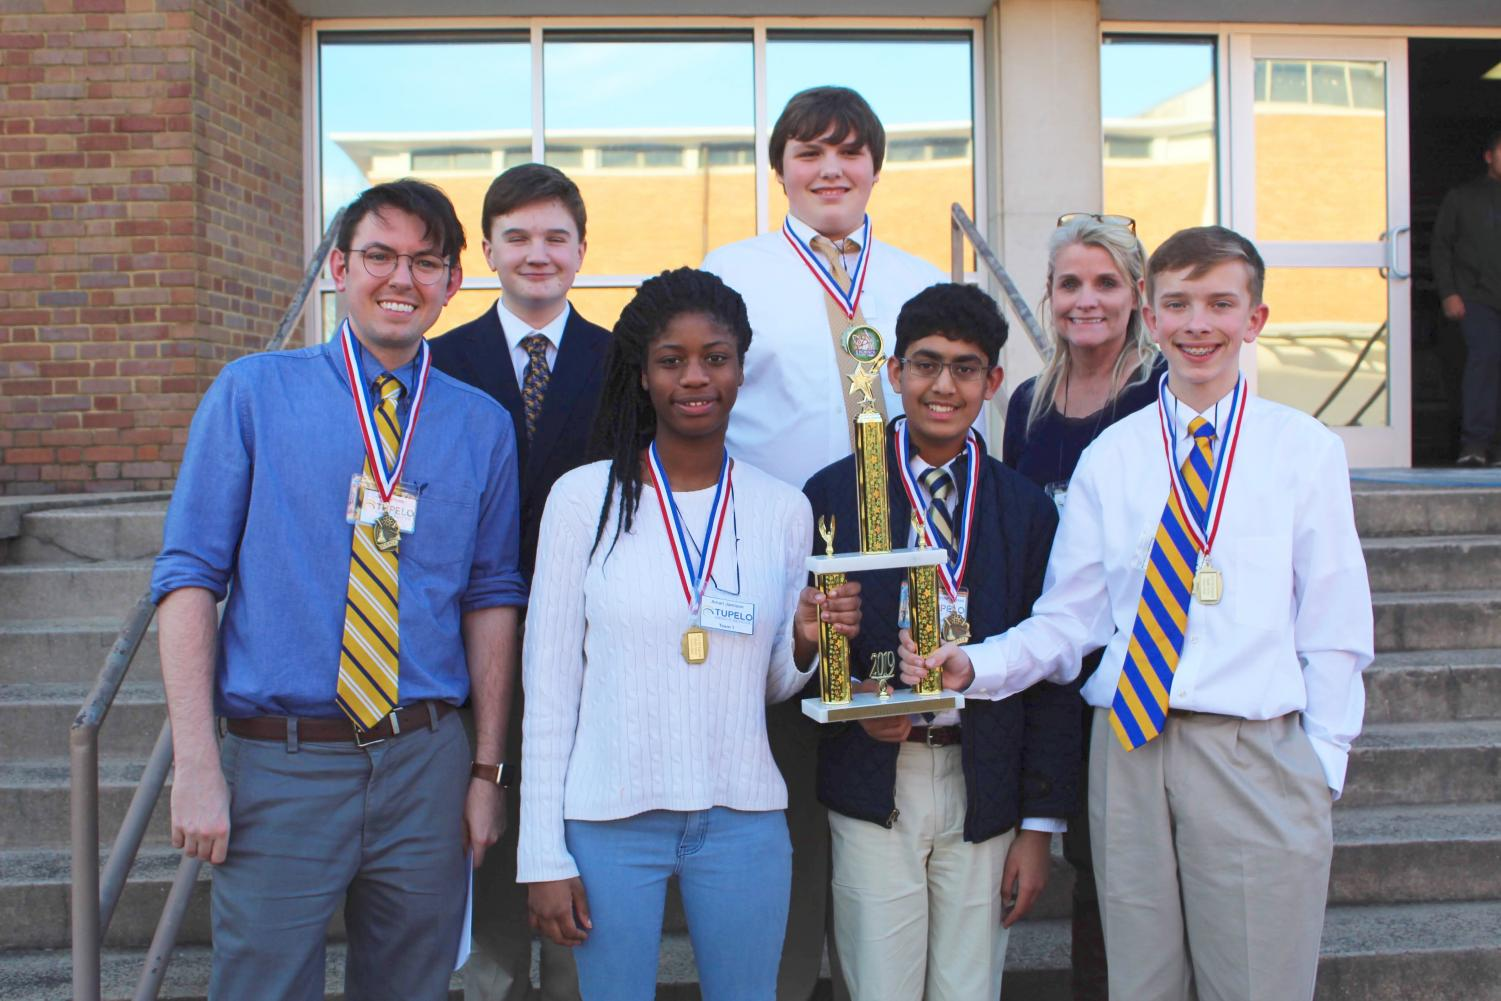 Tupelo Middle School Team 1 takes home the 1st Place title and a bid to nationals.